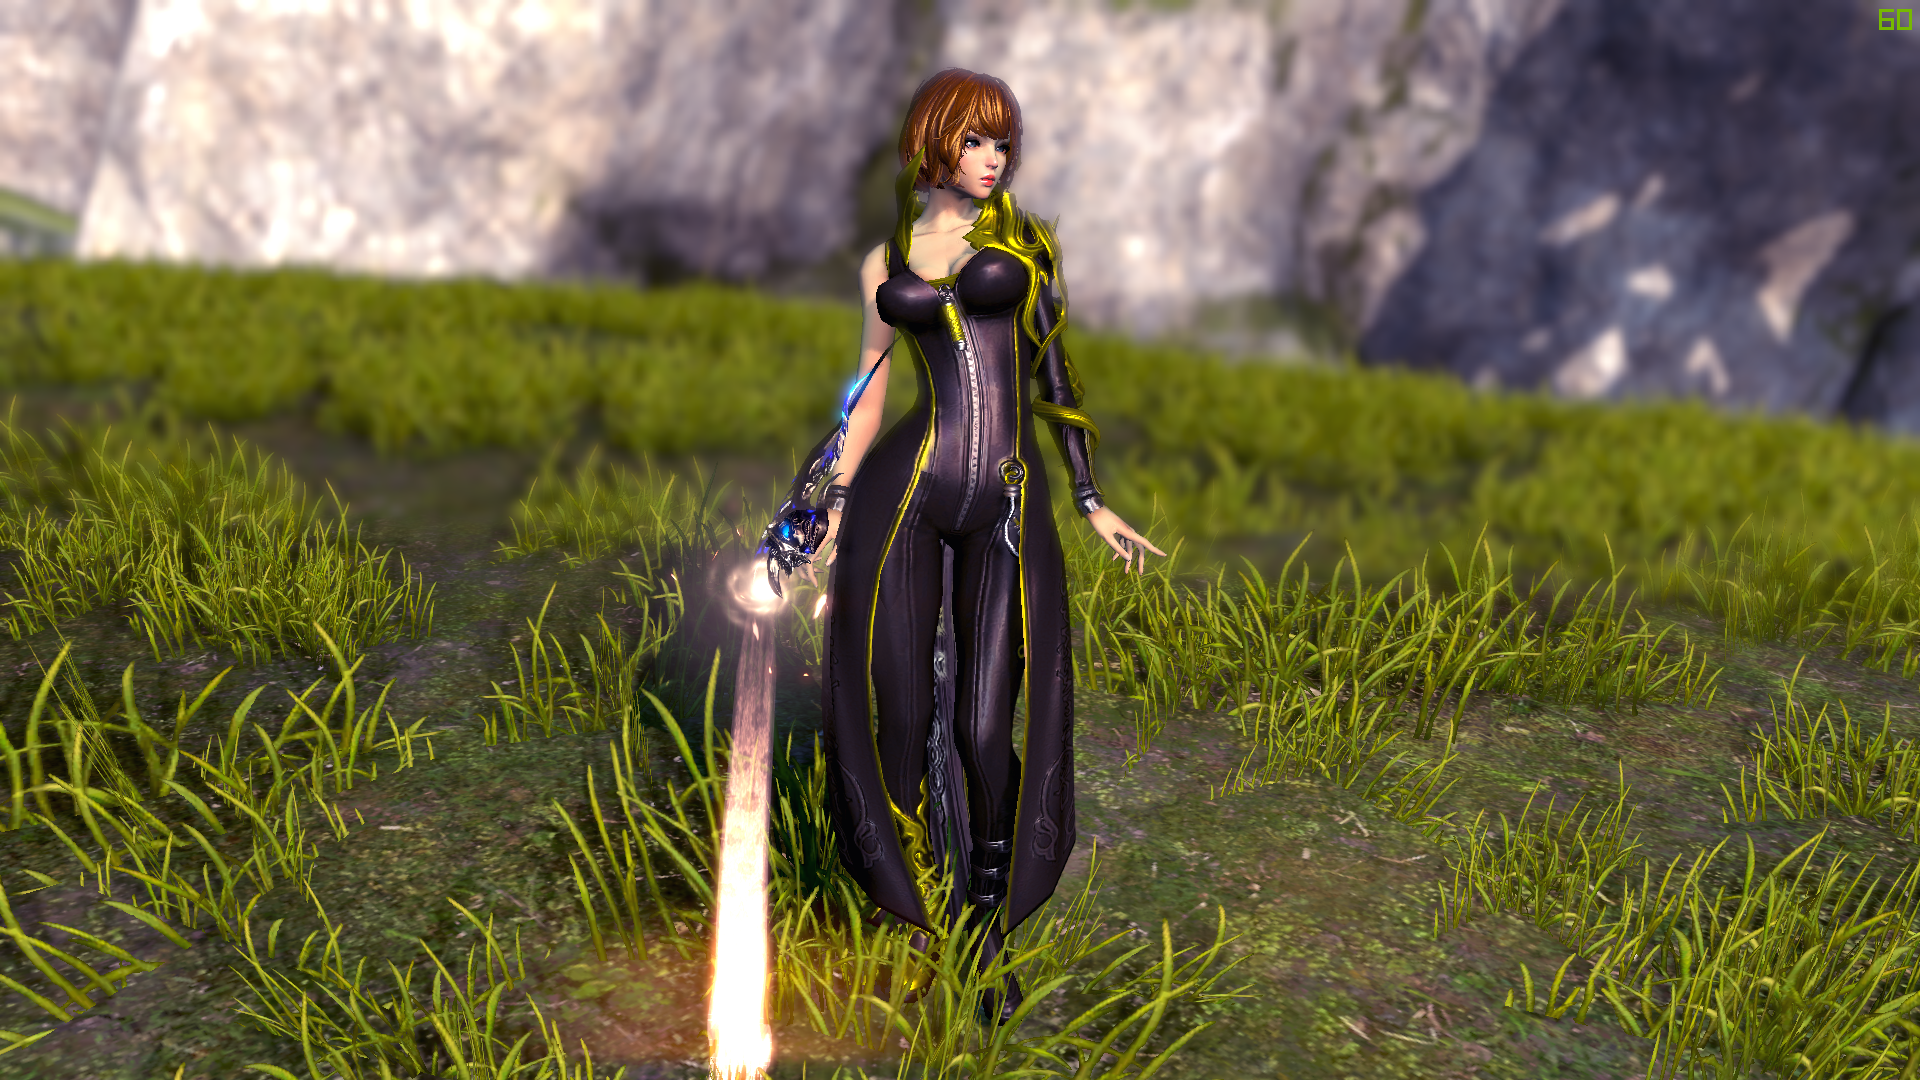 screenshot__199__by_delsabre-da3rz1g.png